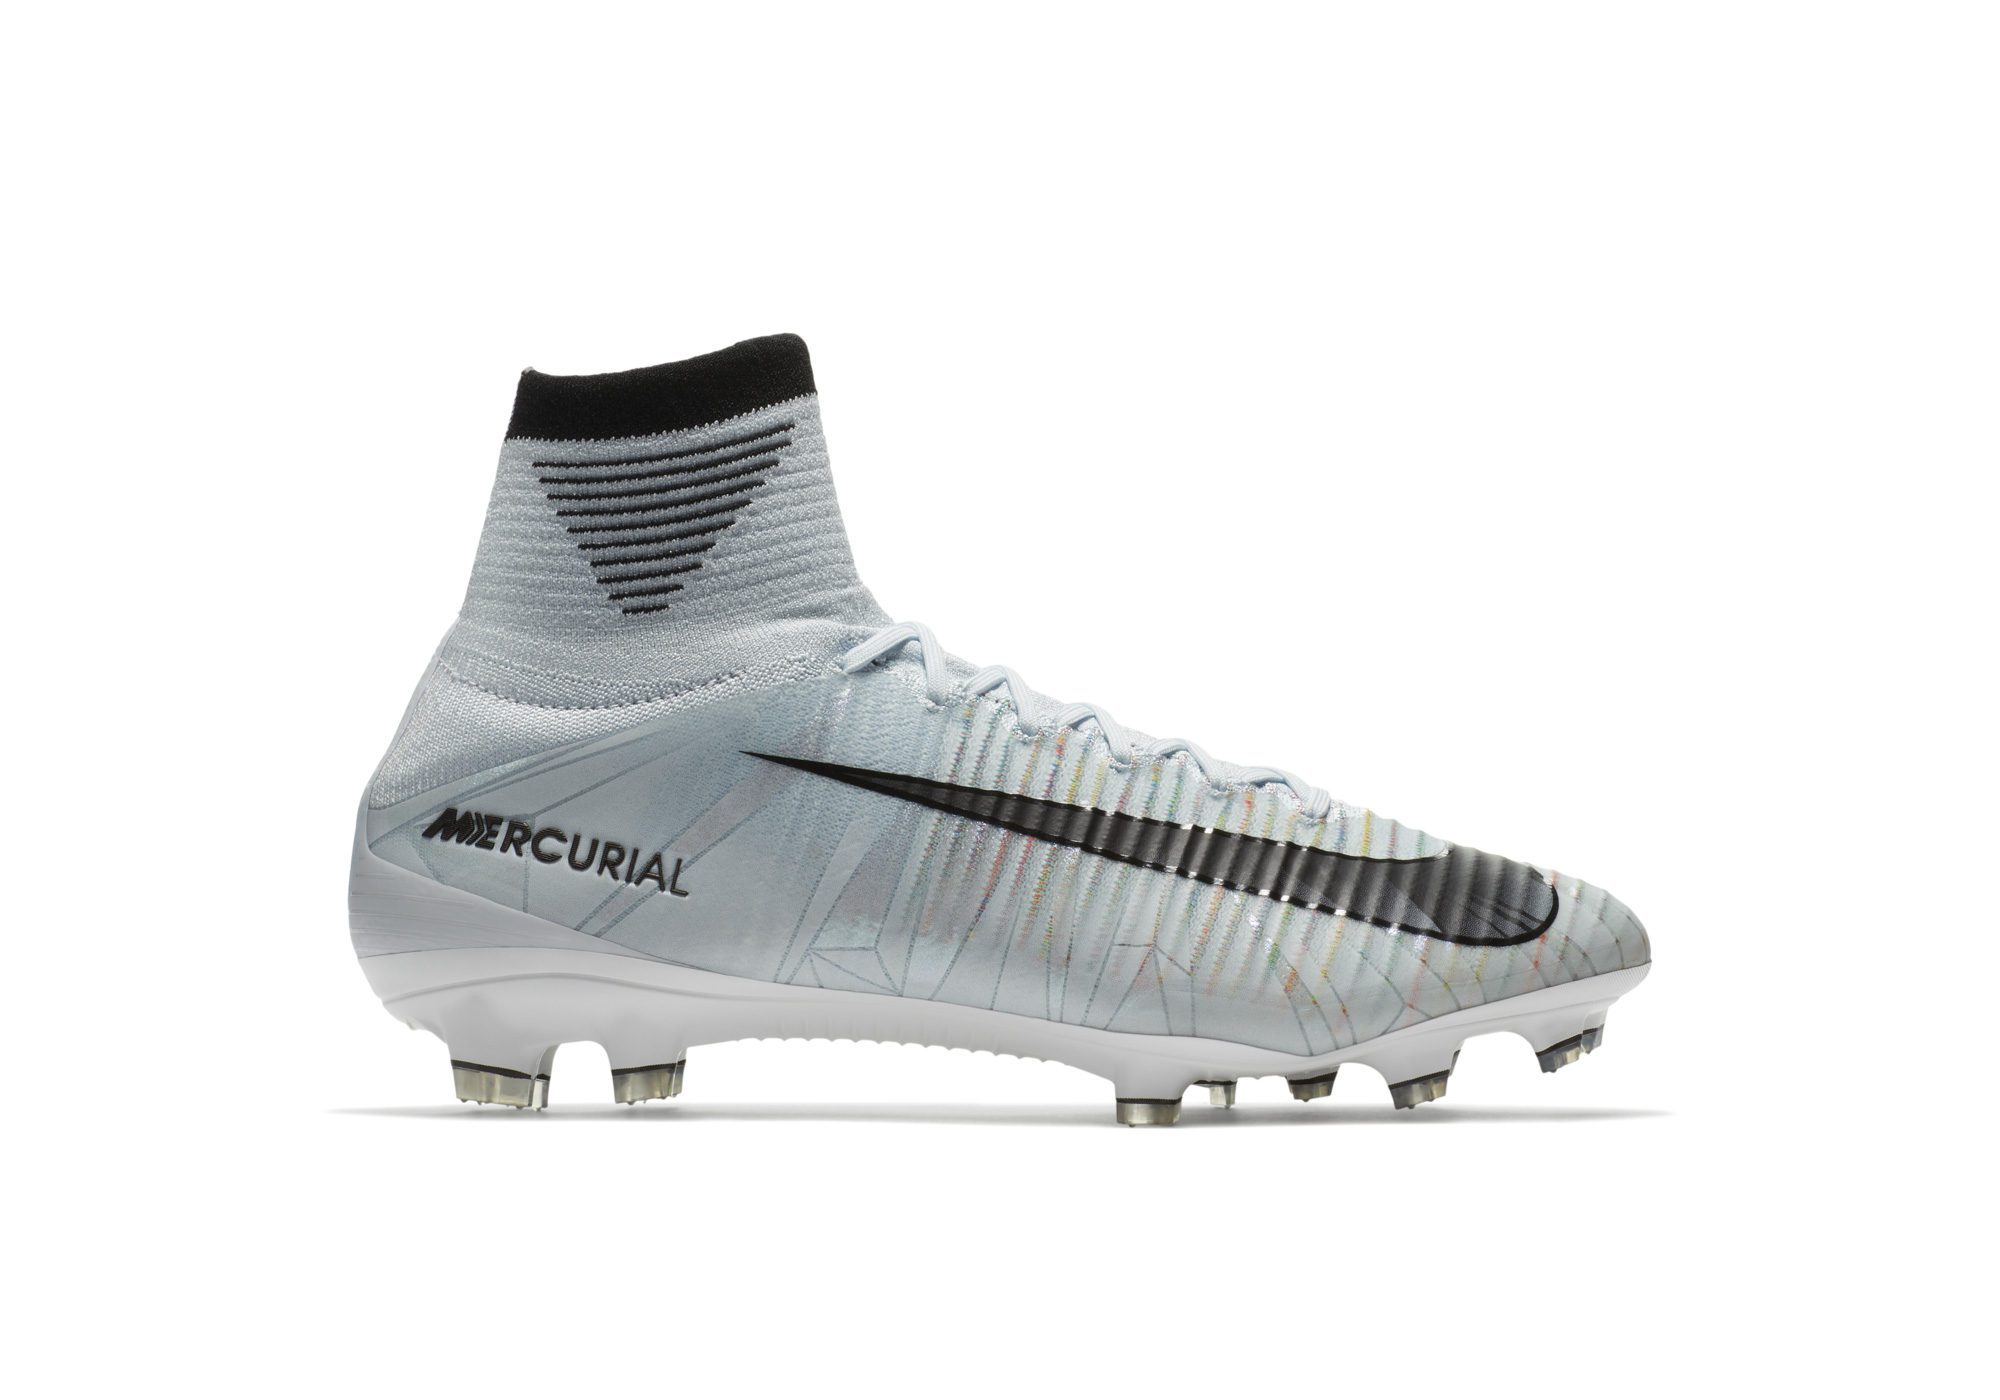 HO17_FB_MercurialSuperfly_852511-401-11622912_D_9Y_rectangle_1600.jpg